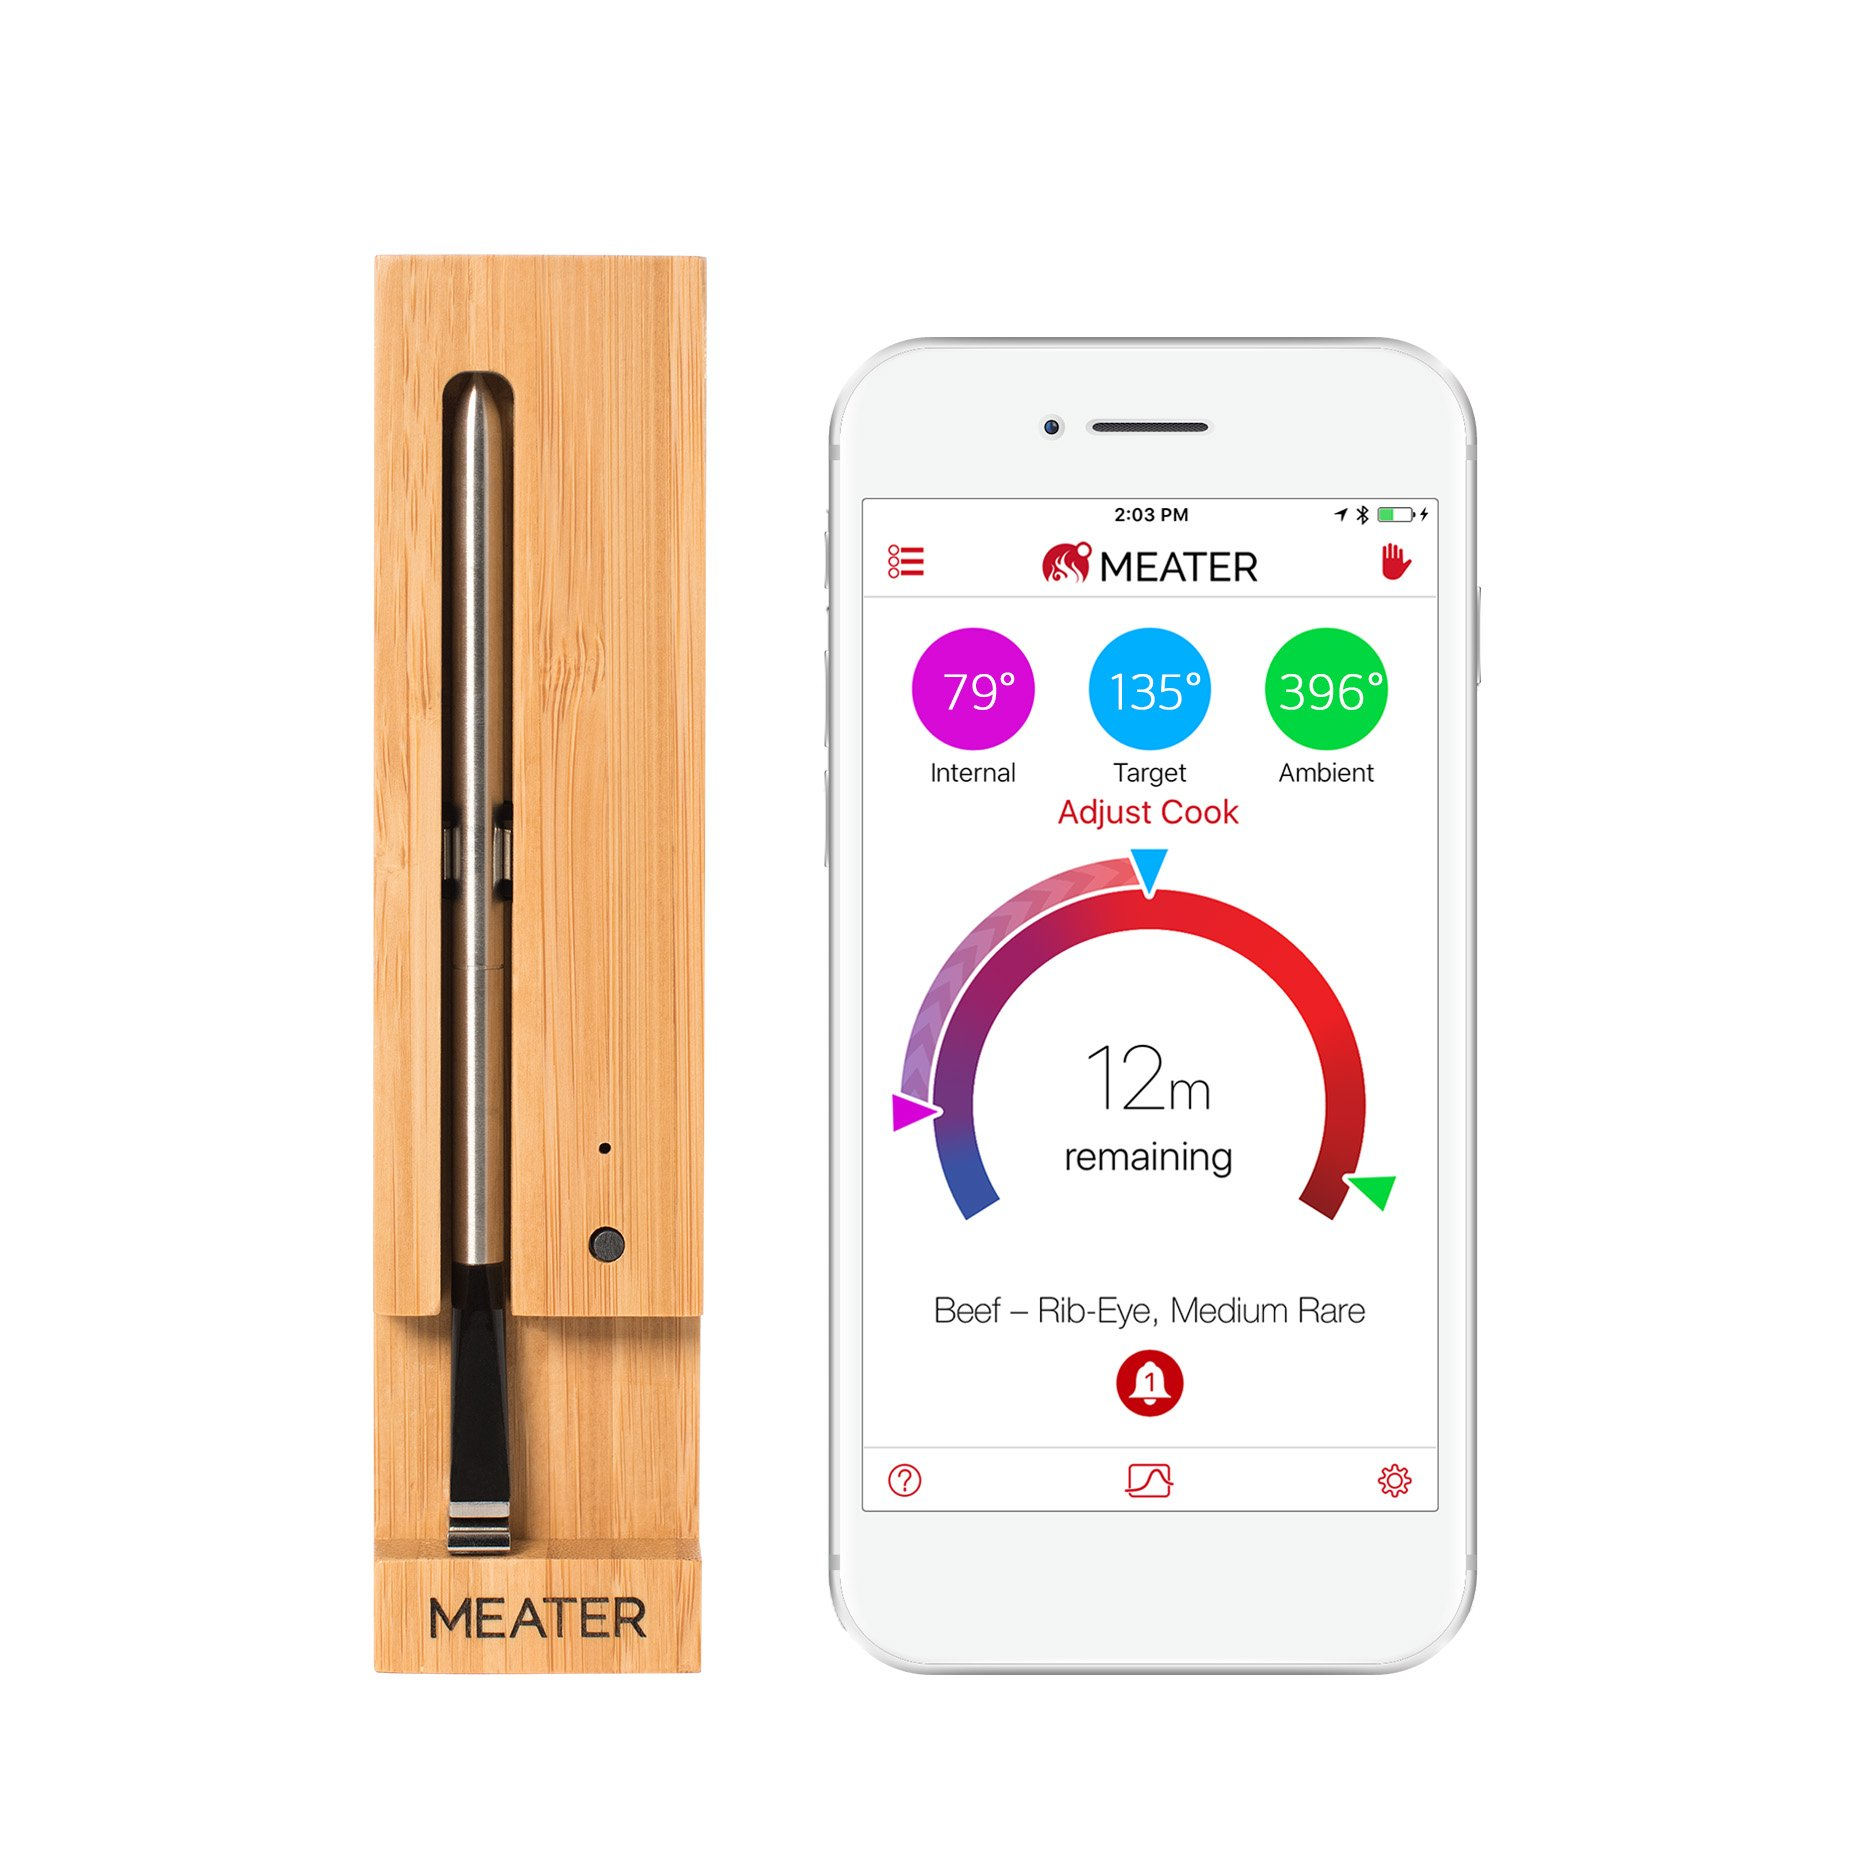 MEATER Up to 33 Feet Original True Wireless Smart Meat Thermometer for the Oven Grill Kitchen BBQ Smoker Rotisserie with Bluetooth and WiFi Digital Connectivity by MEATER